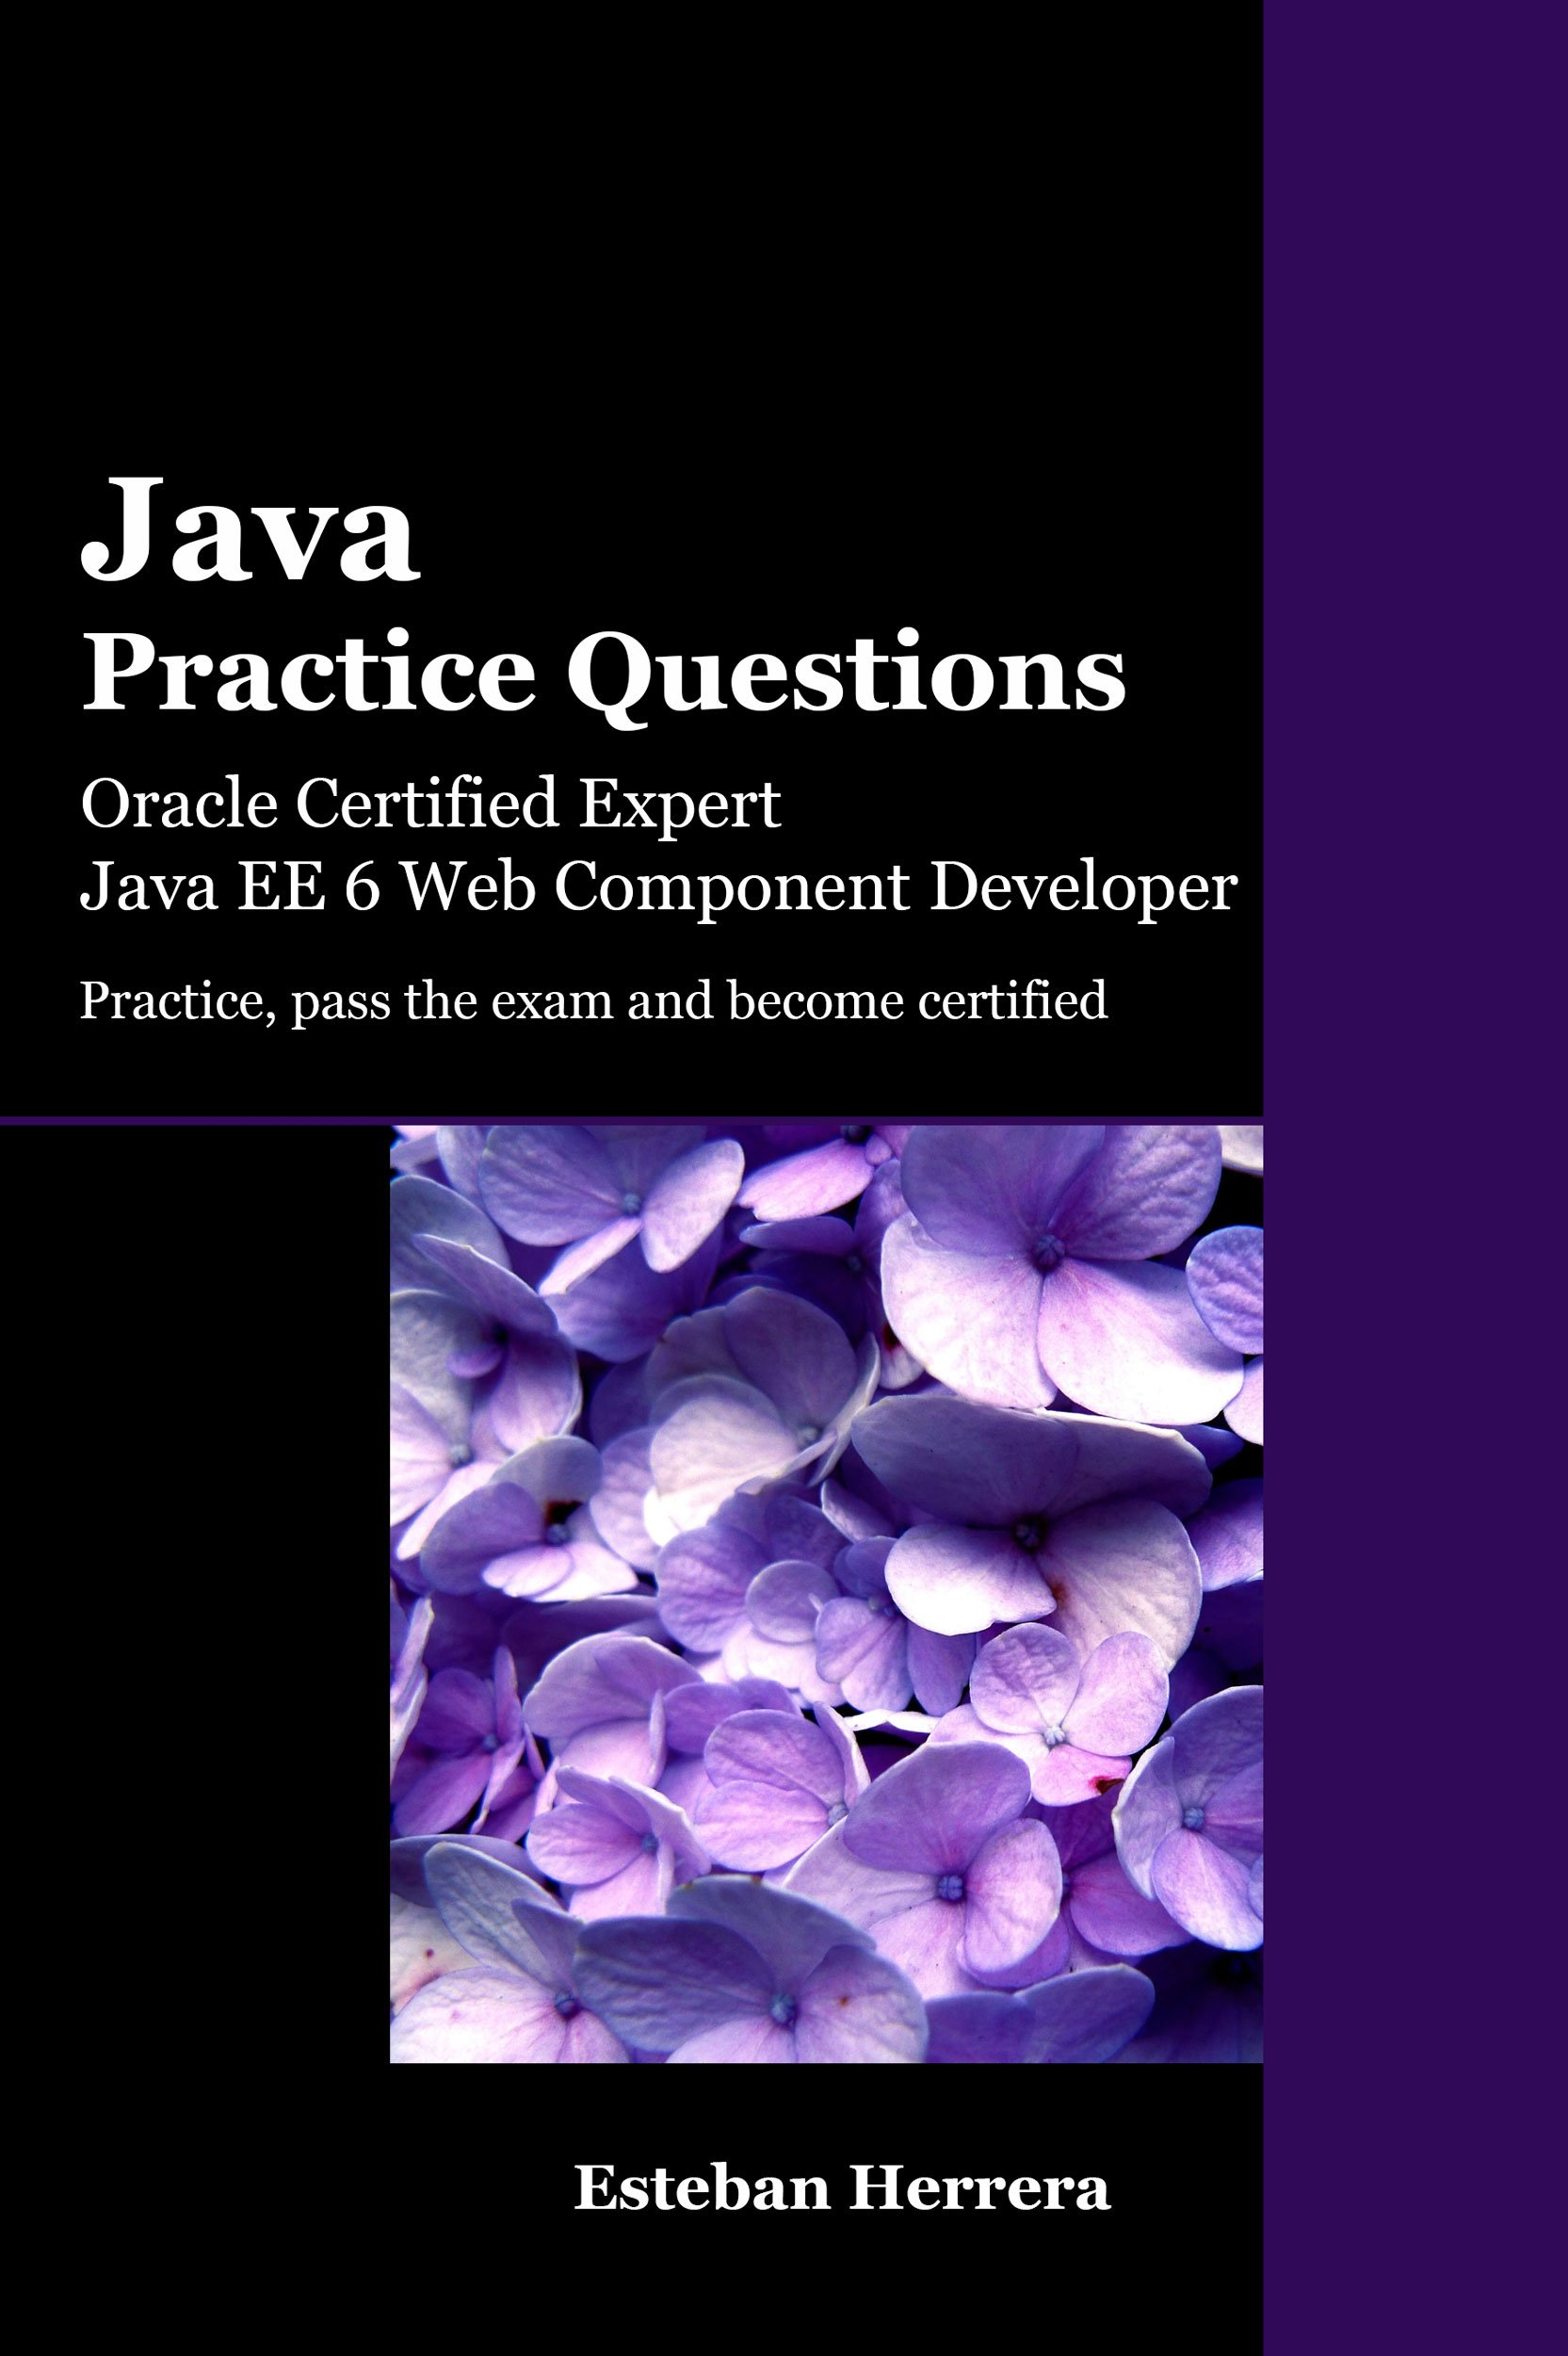 Image OfJava Practice Questions: Oracle Certified Expert, Java EE 6 Web Component Developer (OCEJWCD) (English Edition)